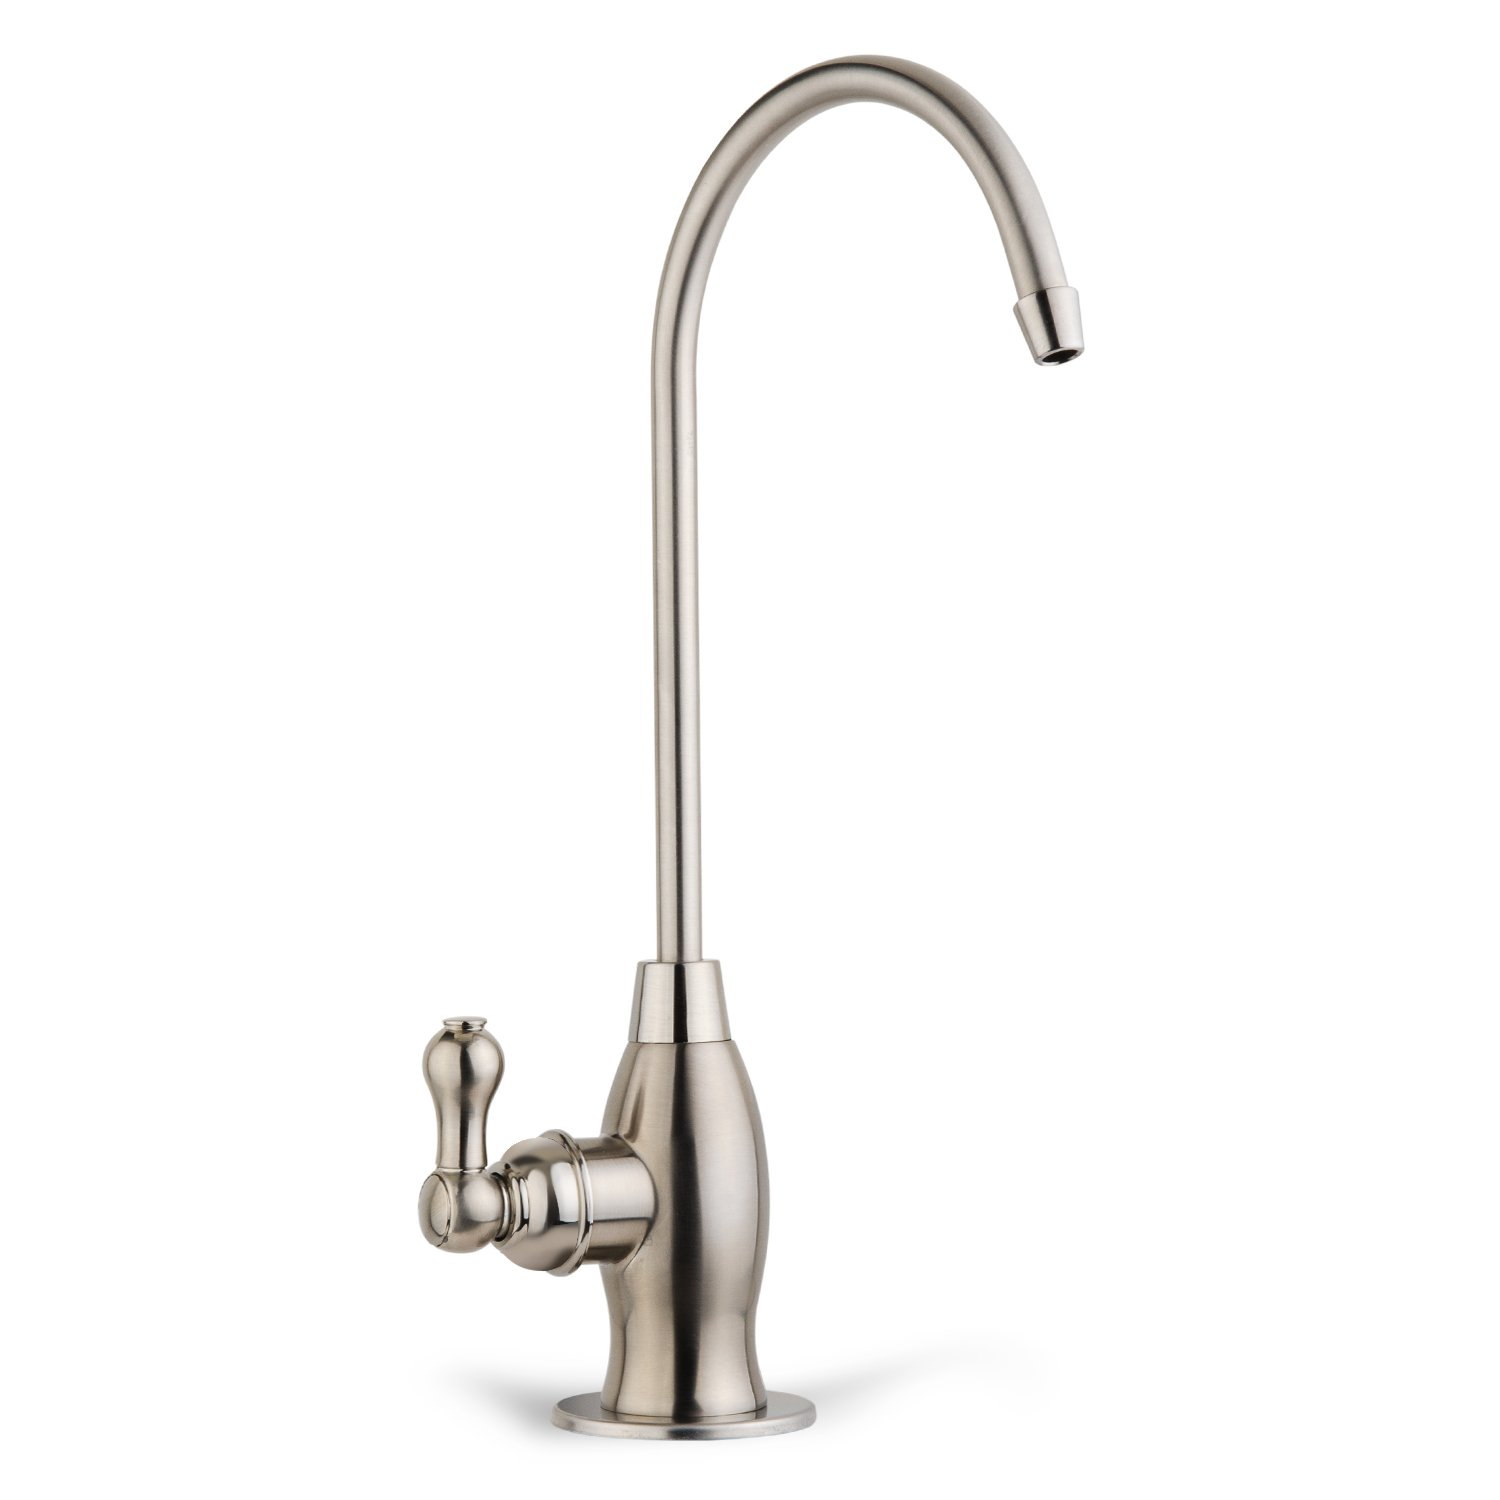 iSpring GK1-BN Heavy Duty Kitchen Bar Sink Drinking Water Faucet, Commercial Water Filtration Faucet - Brushed Nickel - Designer Coke Shaped Style High-Spout